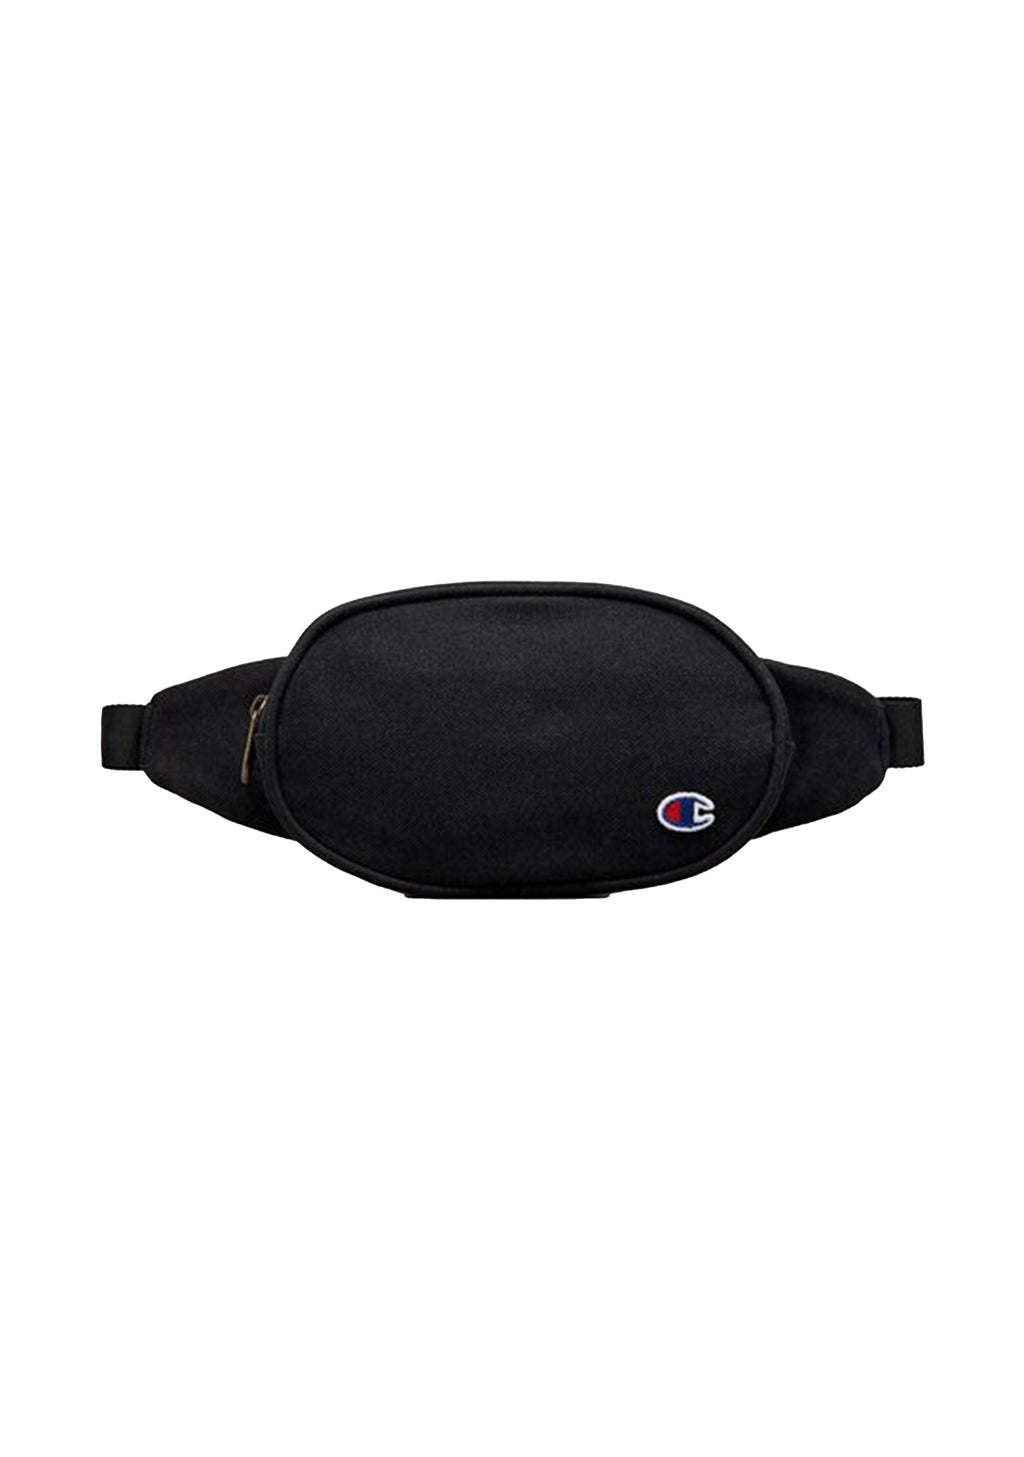 CHAMPION C LOGO BELT BAG <br> ZYWNA1 BLK